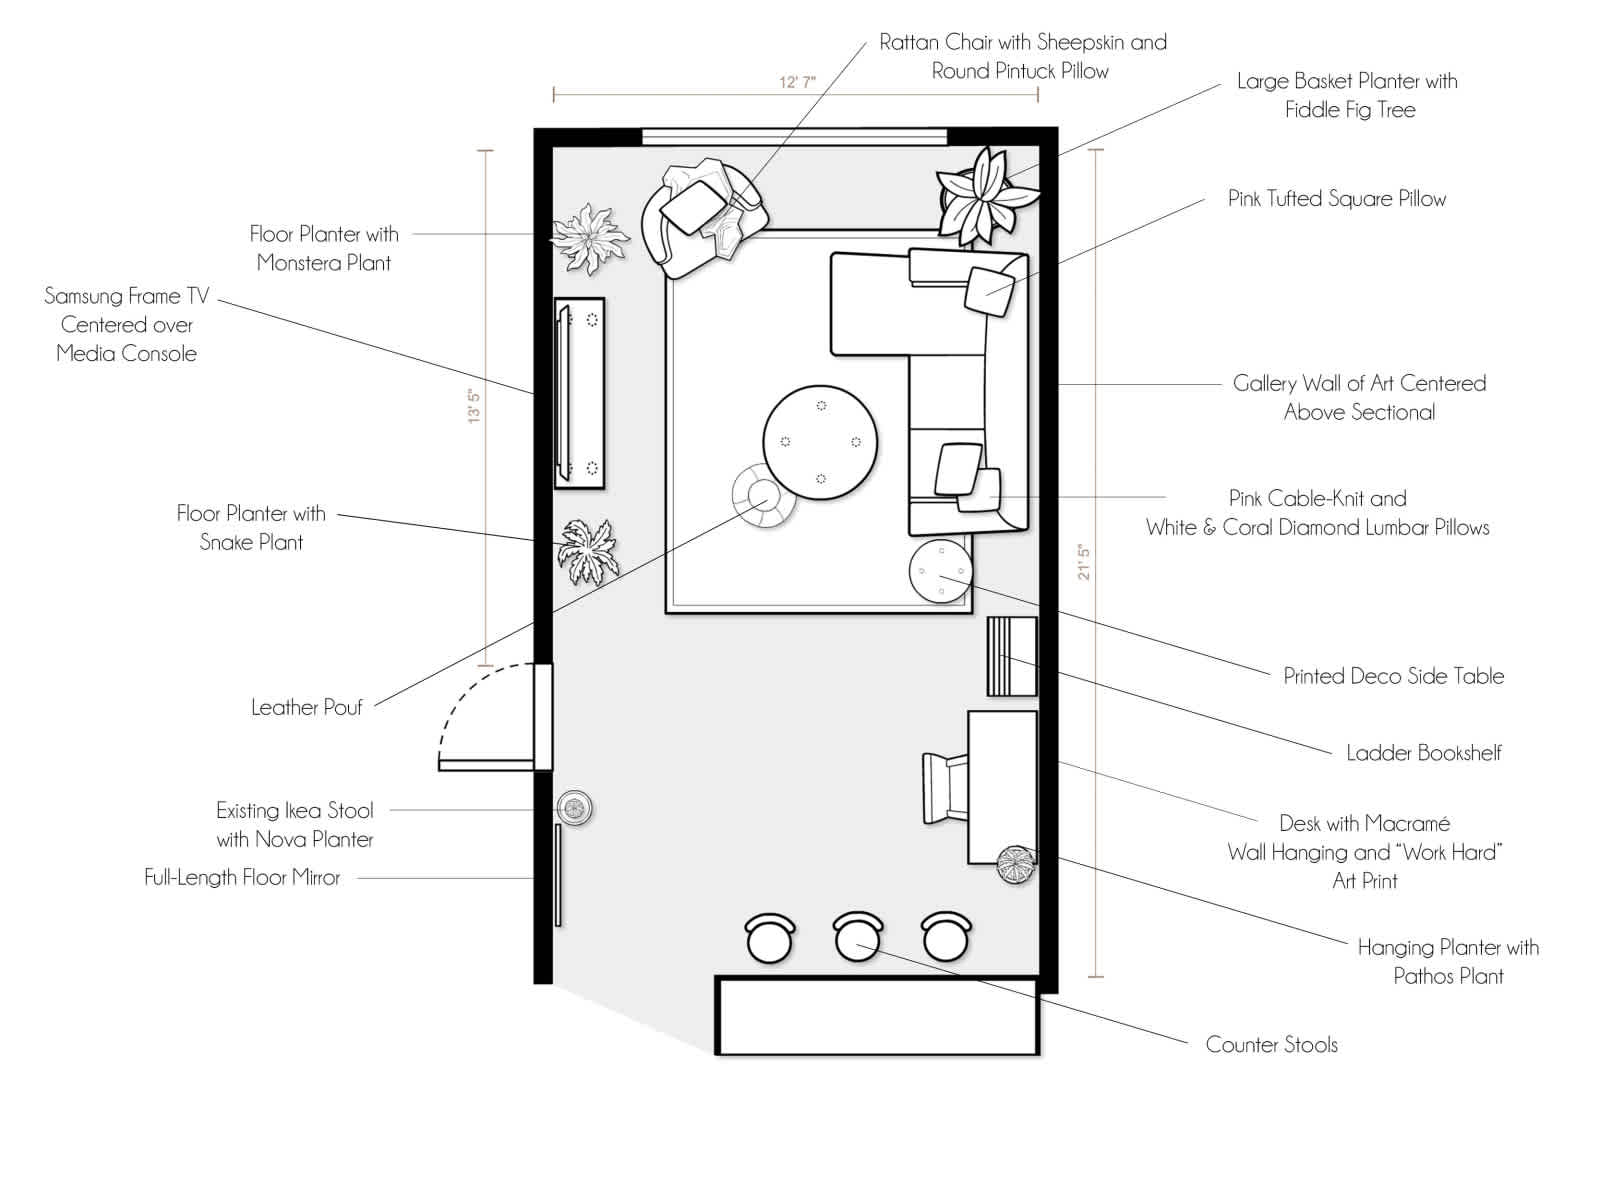 _decorist_D30v_988_juleslr_floorplan_final_rev2.jpg.jpg